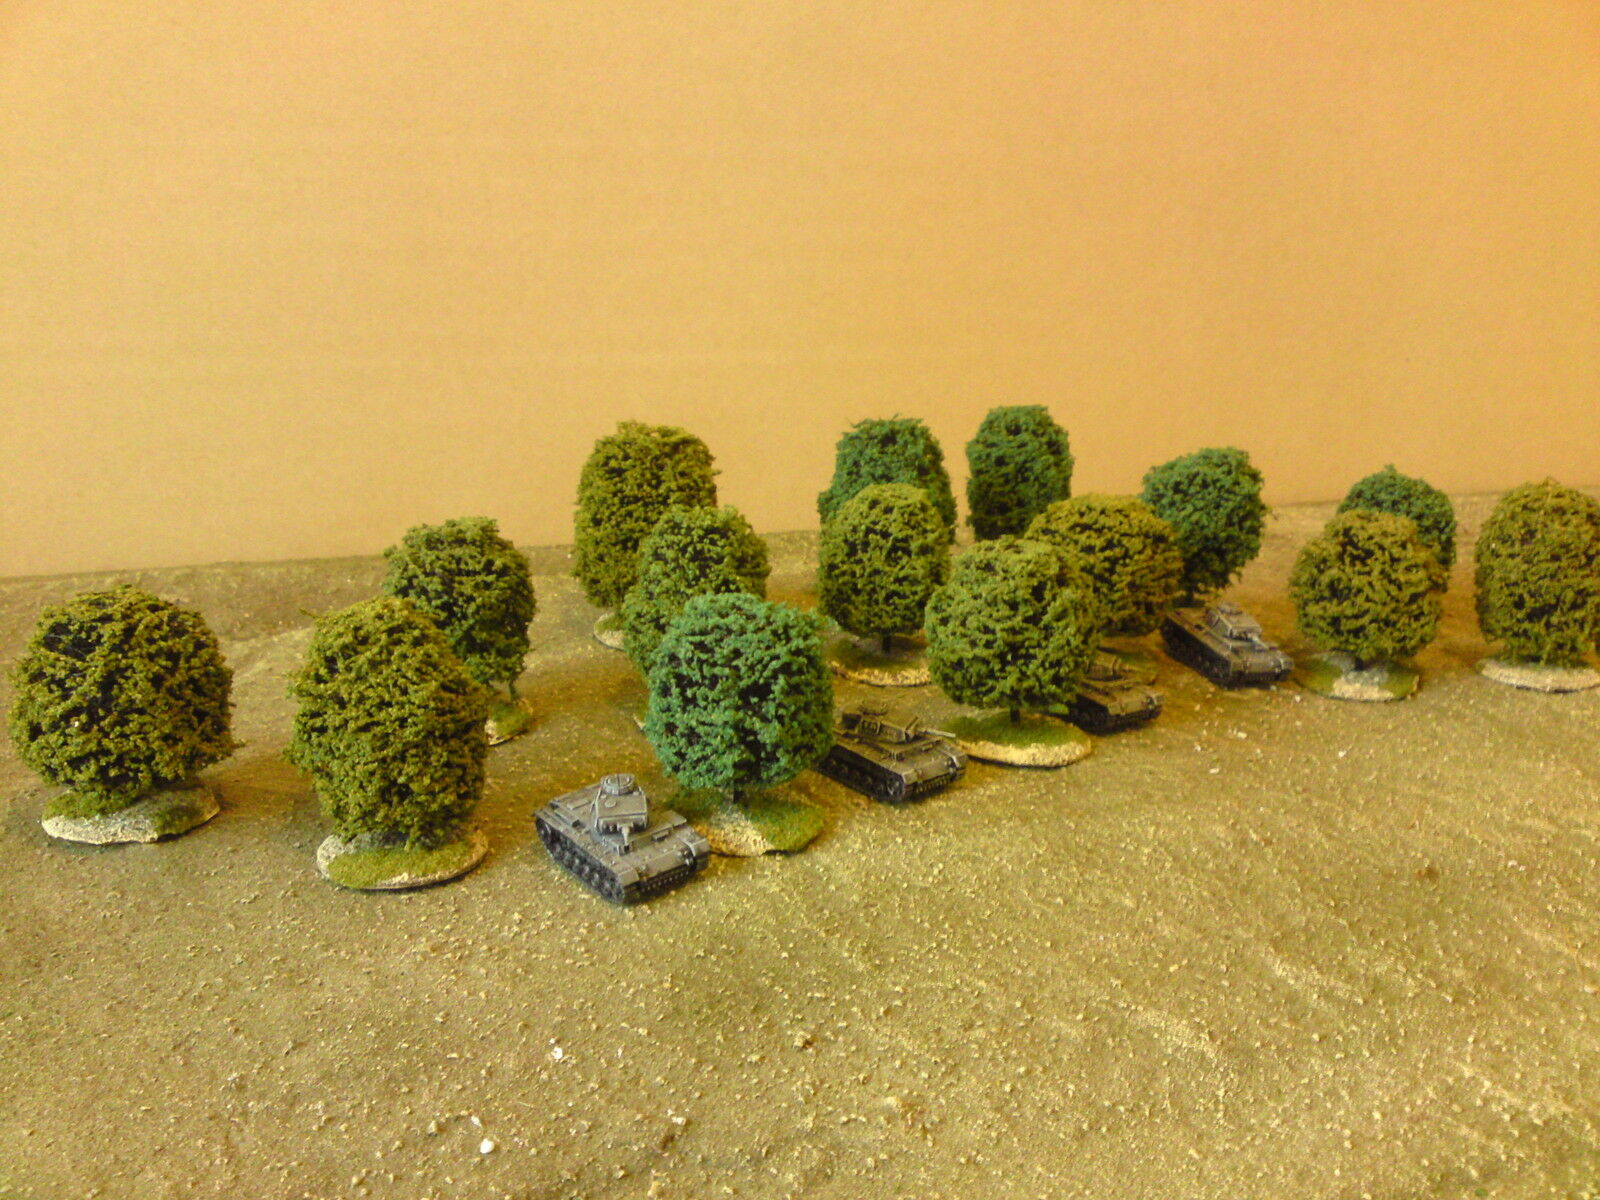 24 x 15mm sculptured trees (deciduous style) suitable for ww2, fow